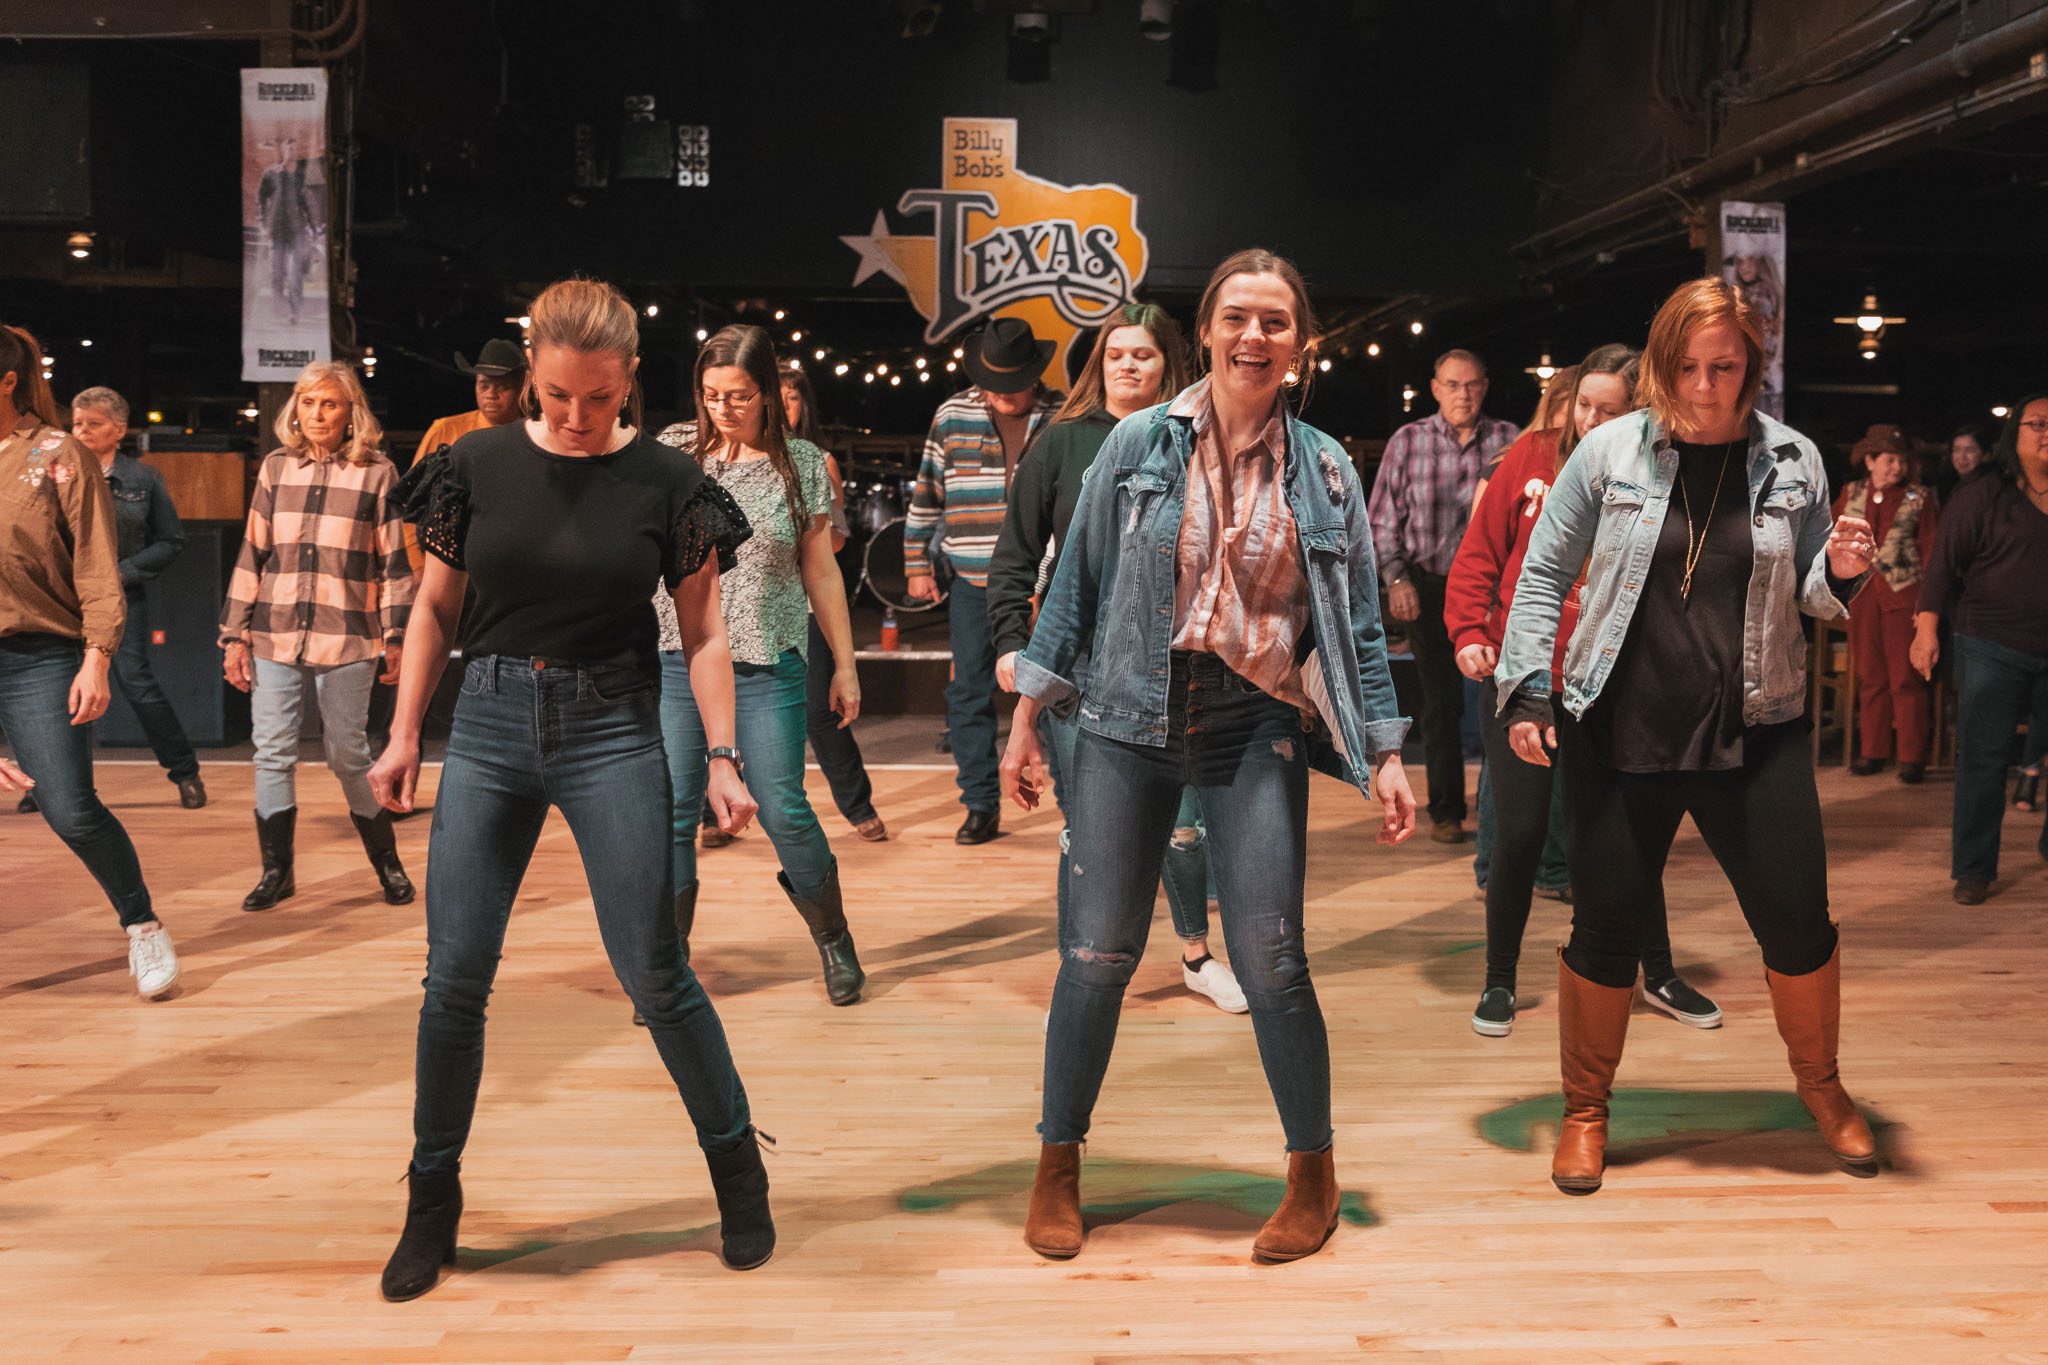 Line dancing lessons at Billy Bob's Texas honky tonk in Fort Worth